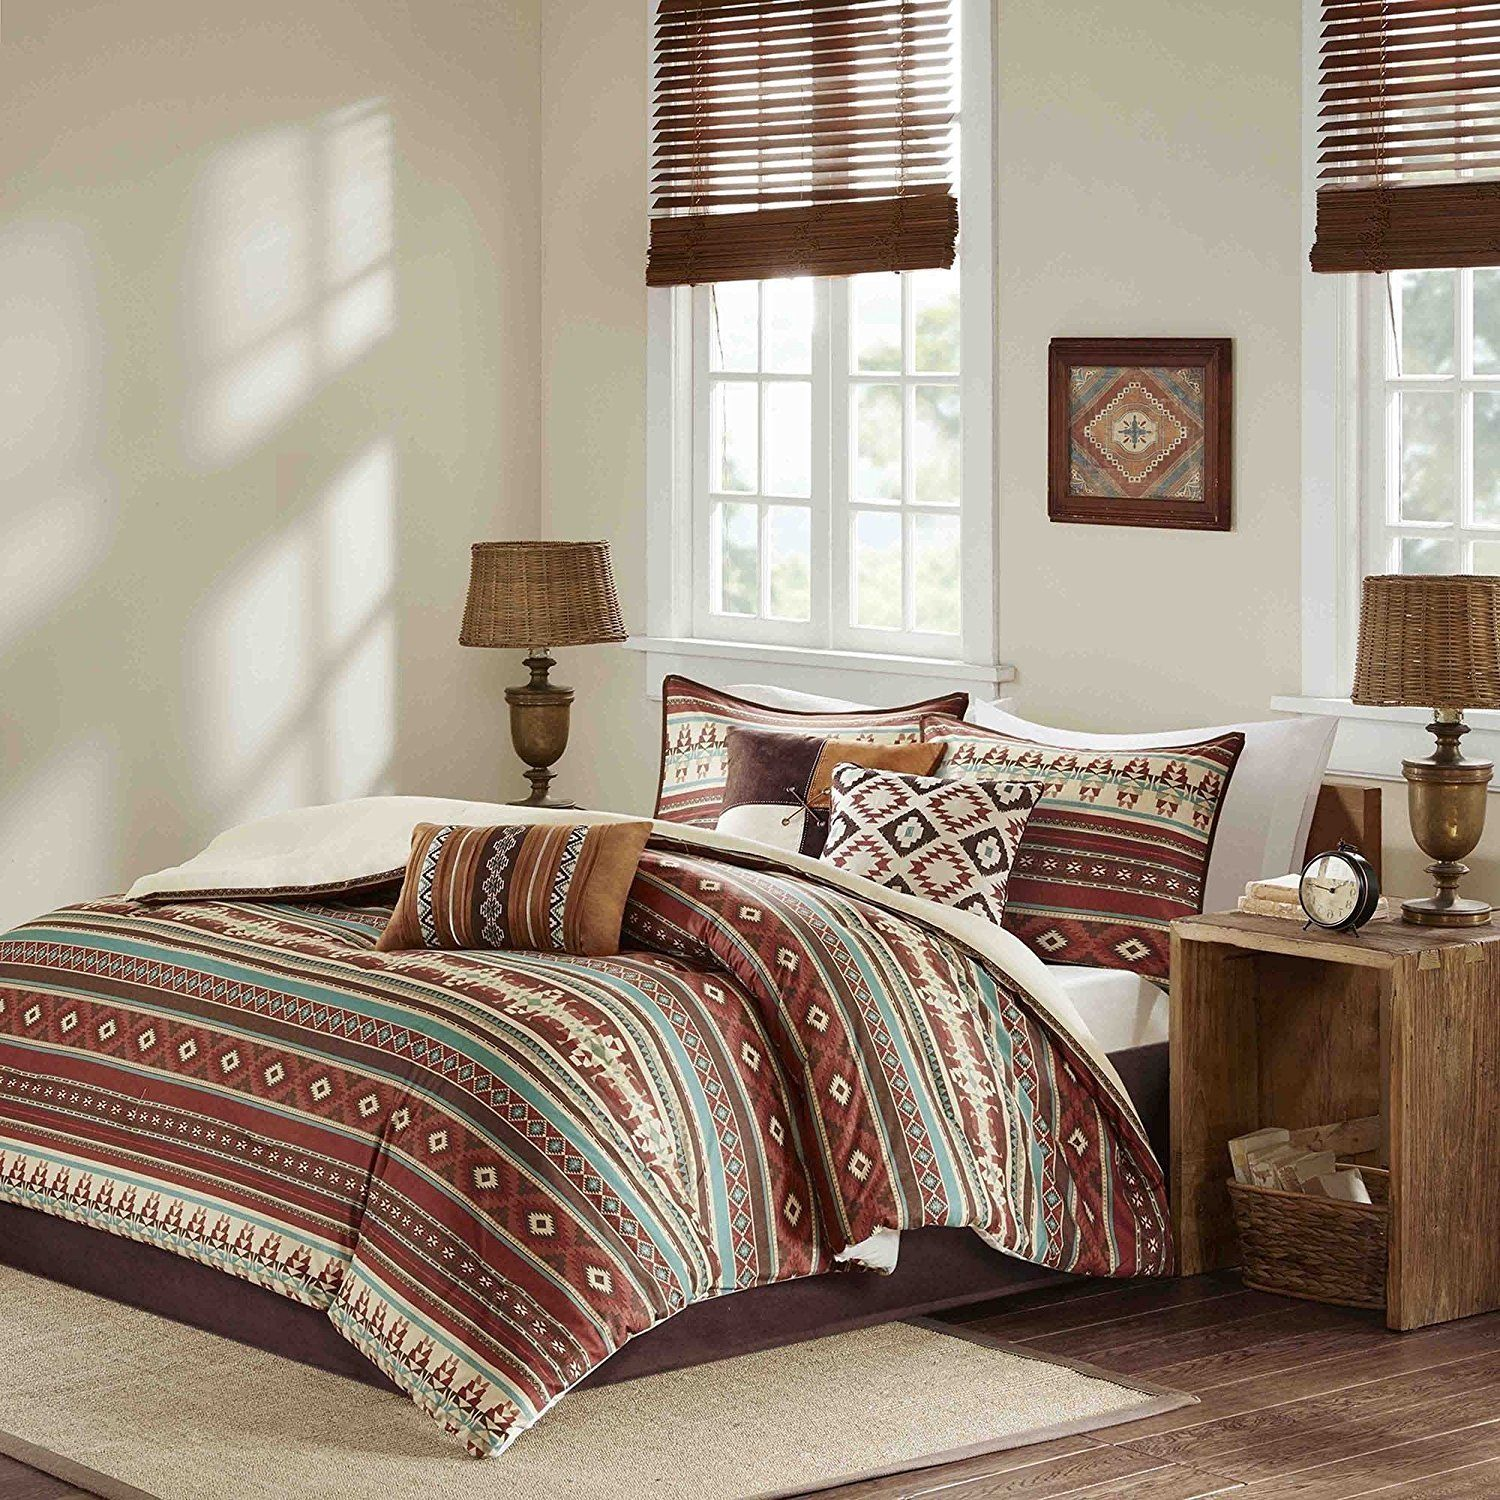 7 Piece Red Brown Blue White Southwest Comforter Queen Set